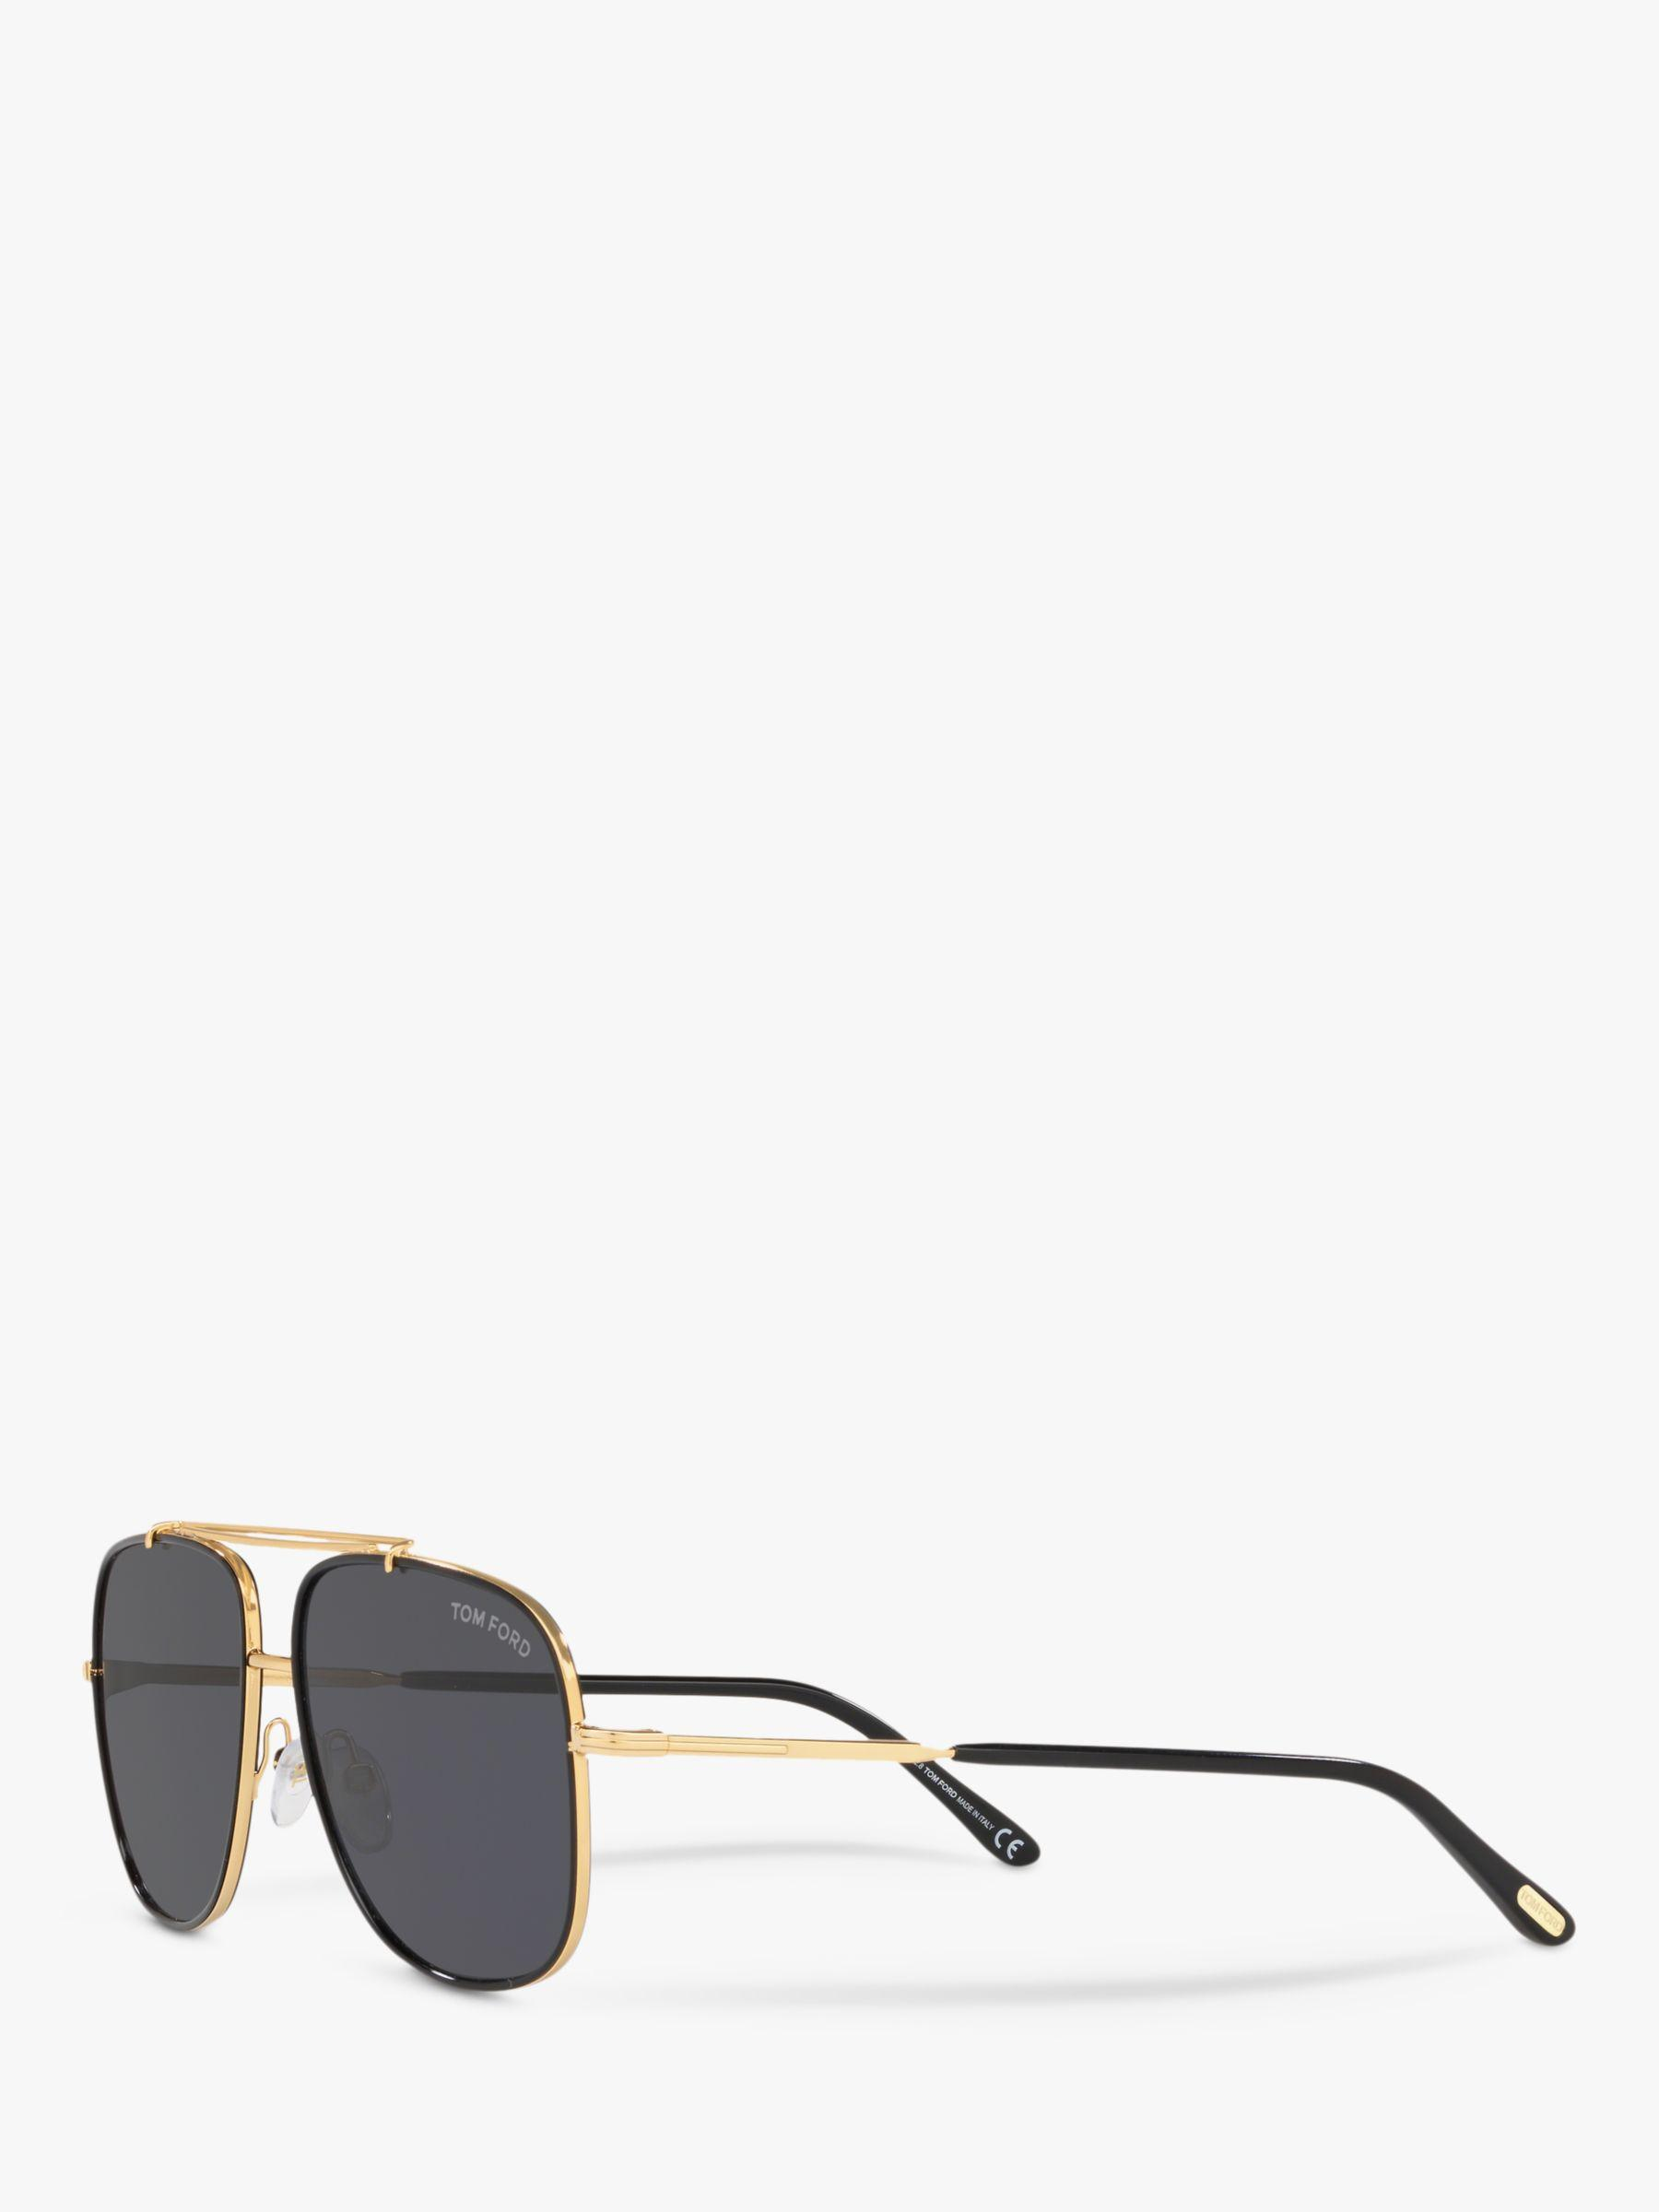 037775bed Tom Ford Ft0693 Men's Benton Square Sunglasses in Black for Men - Lyst